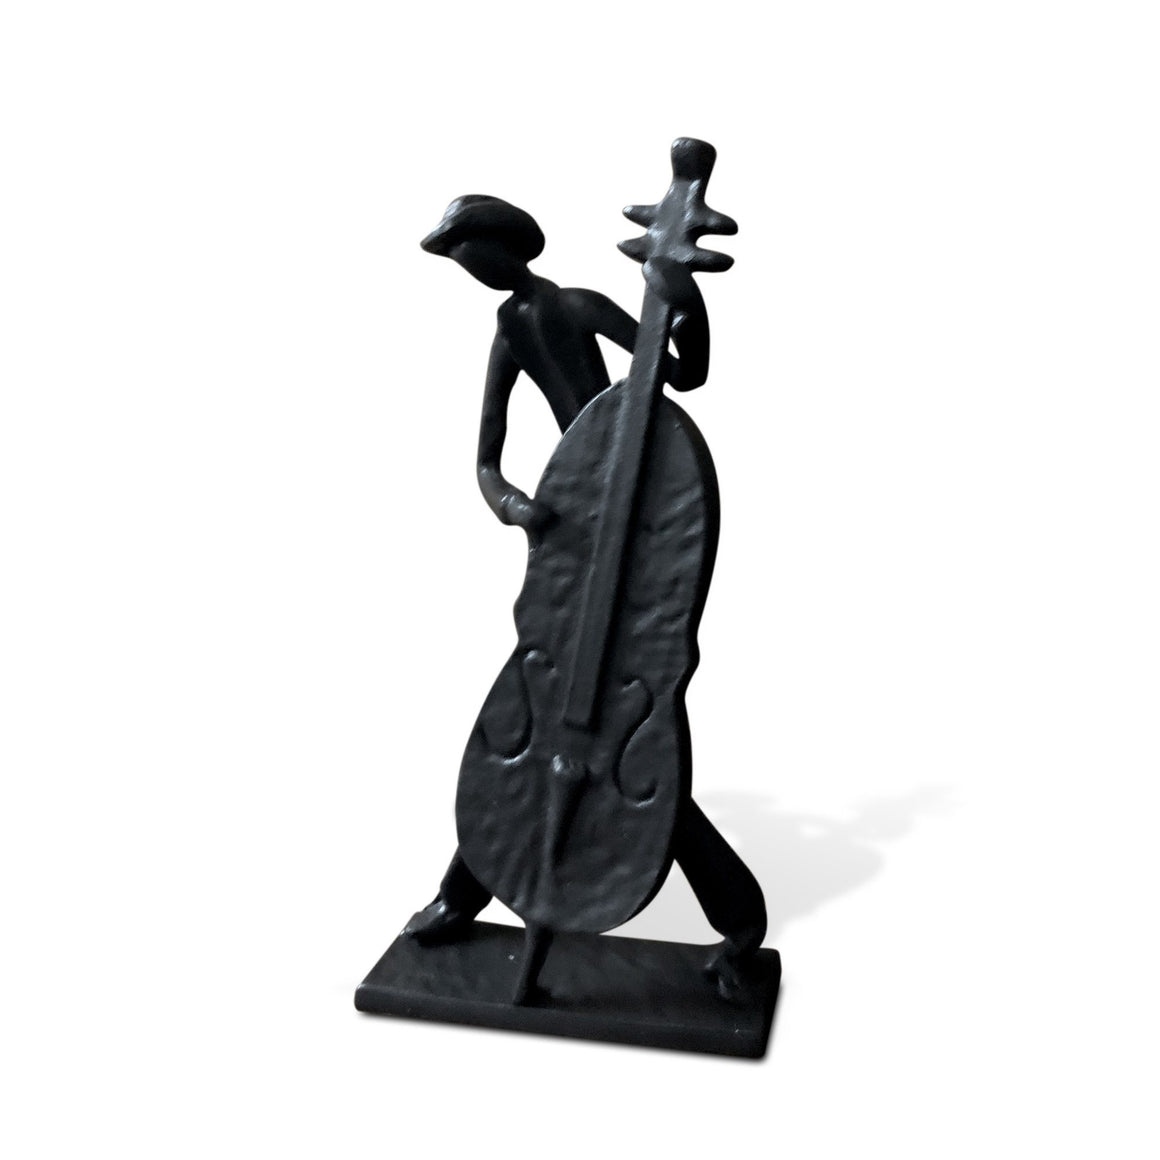 Musician Playing Celo Sculpture Cast Iron Sculpture Rustic Deco